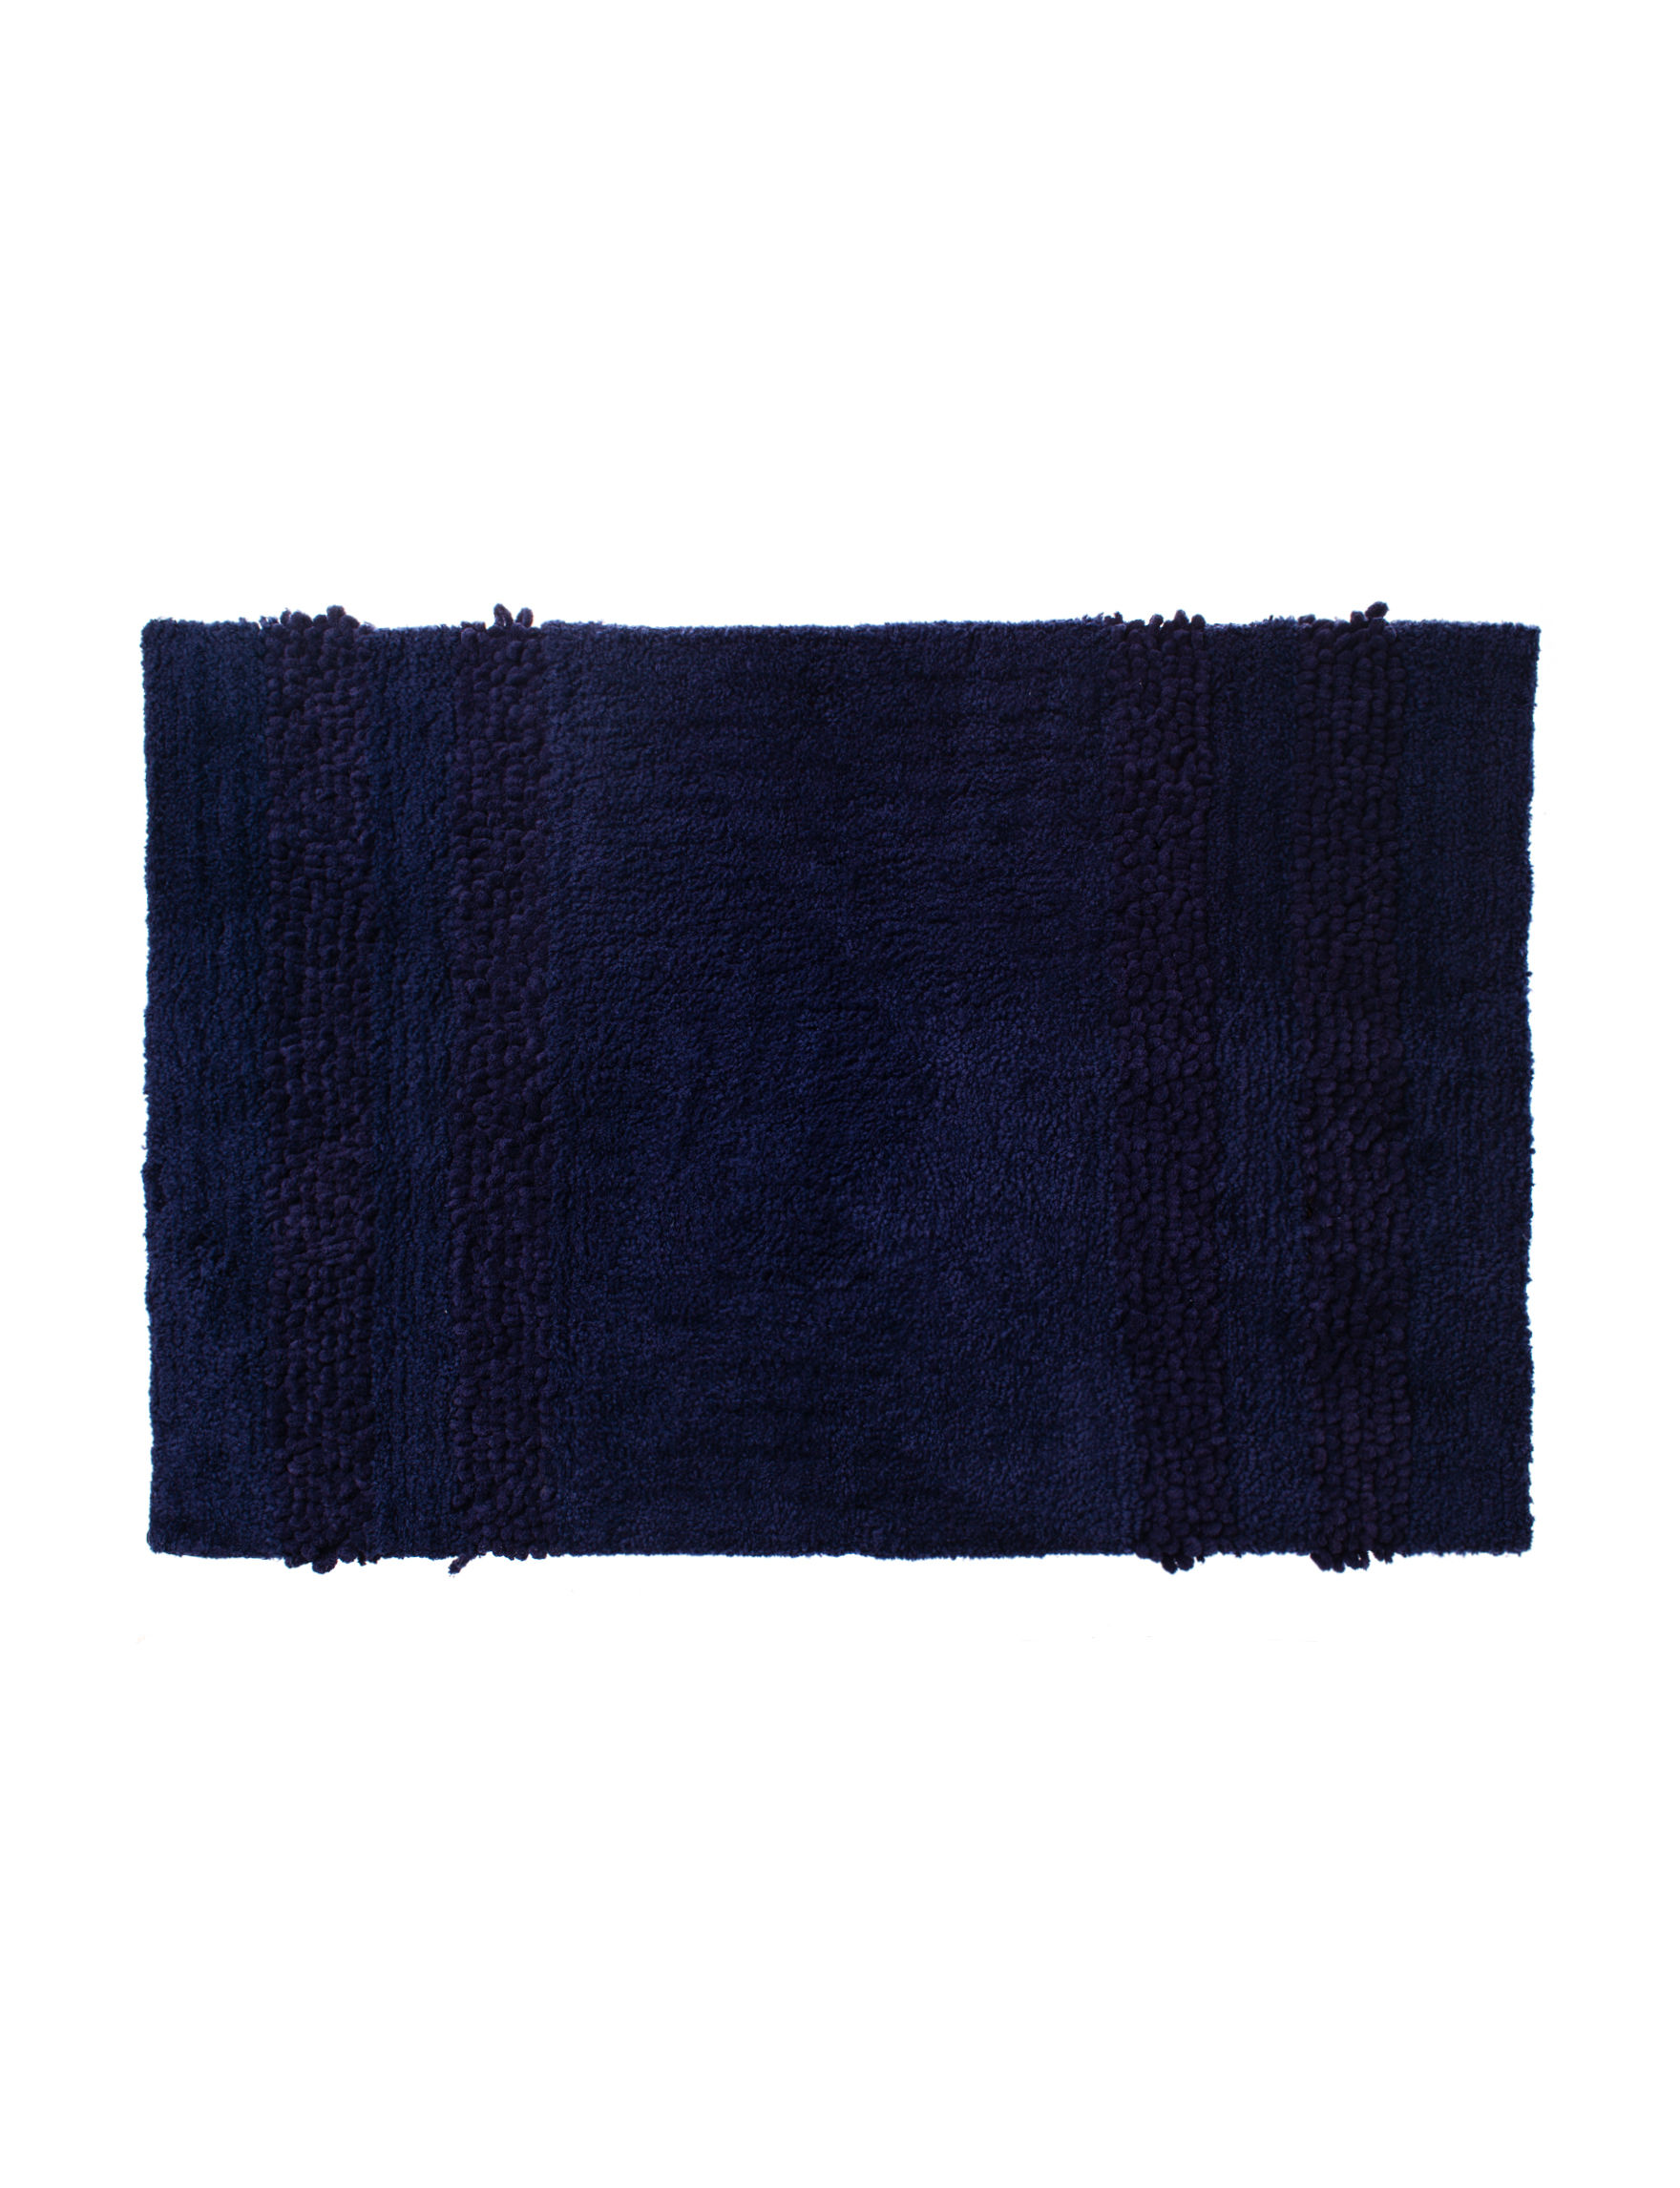 Great Hotels Collection Navy Bath Rugs & Mats